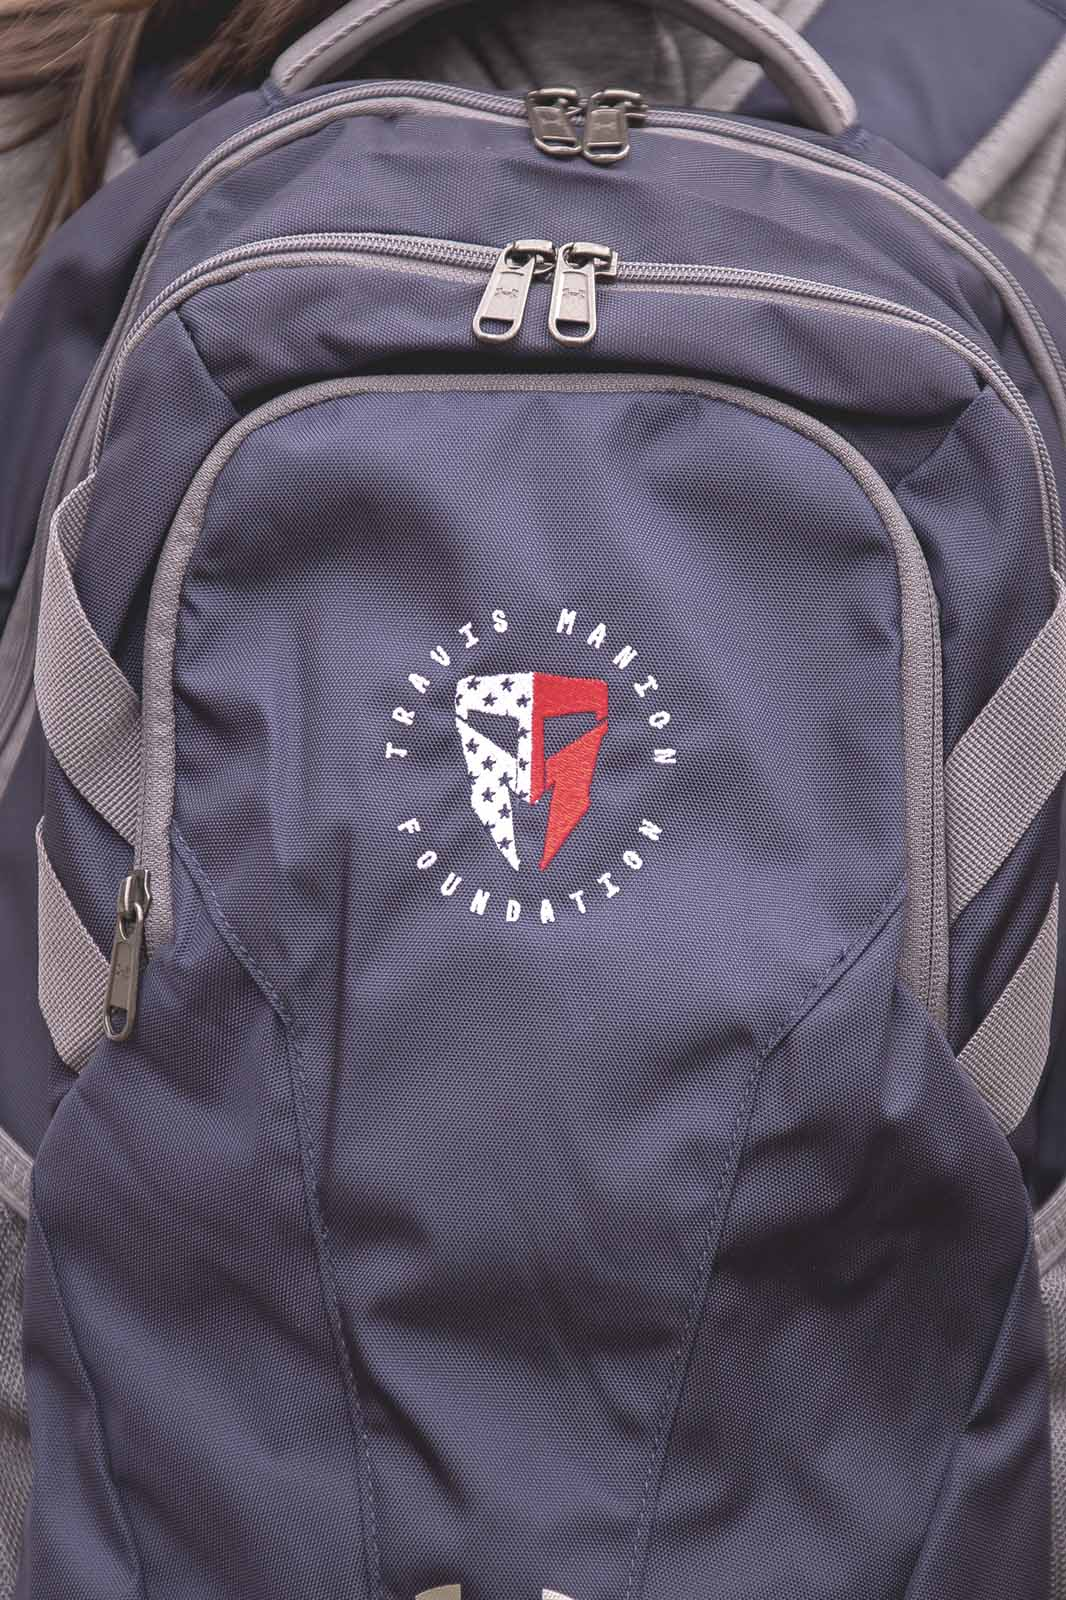 Travis Manion Foundation Under Armour Navy Backpack